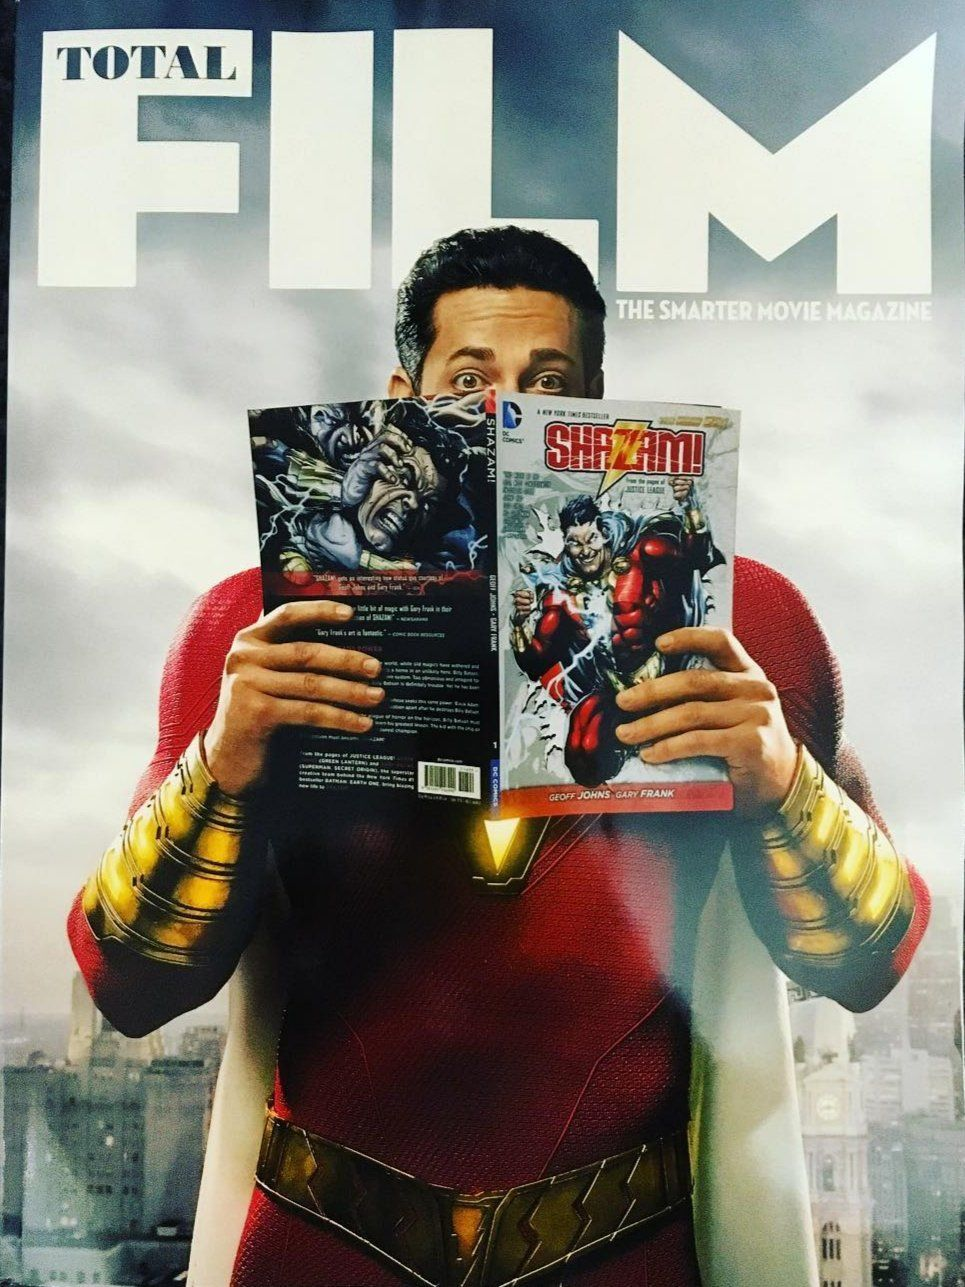 Shazam Cover For Total Film Movies Pinterest Cómics And Galerías